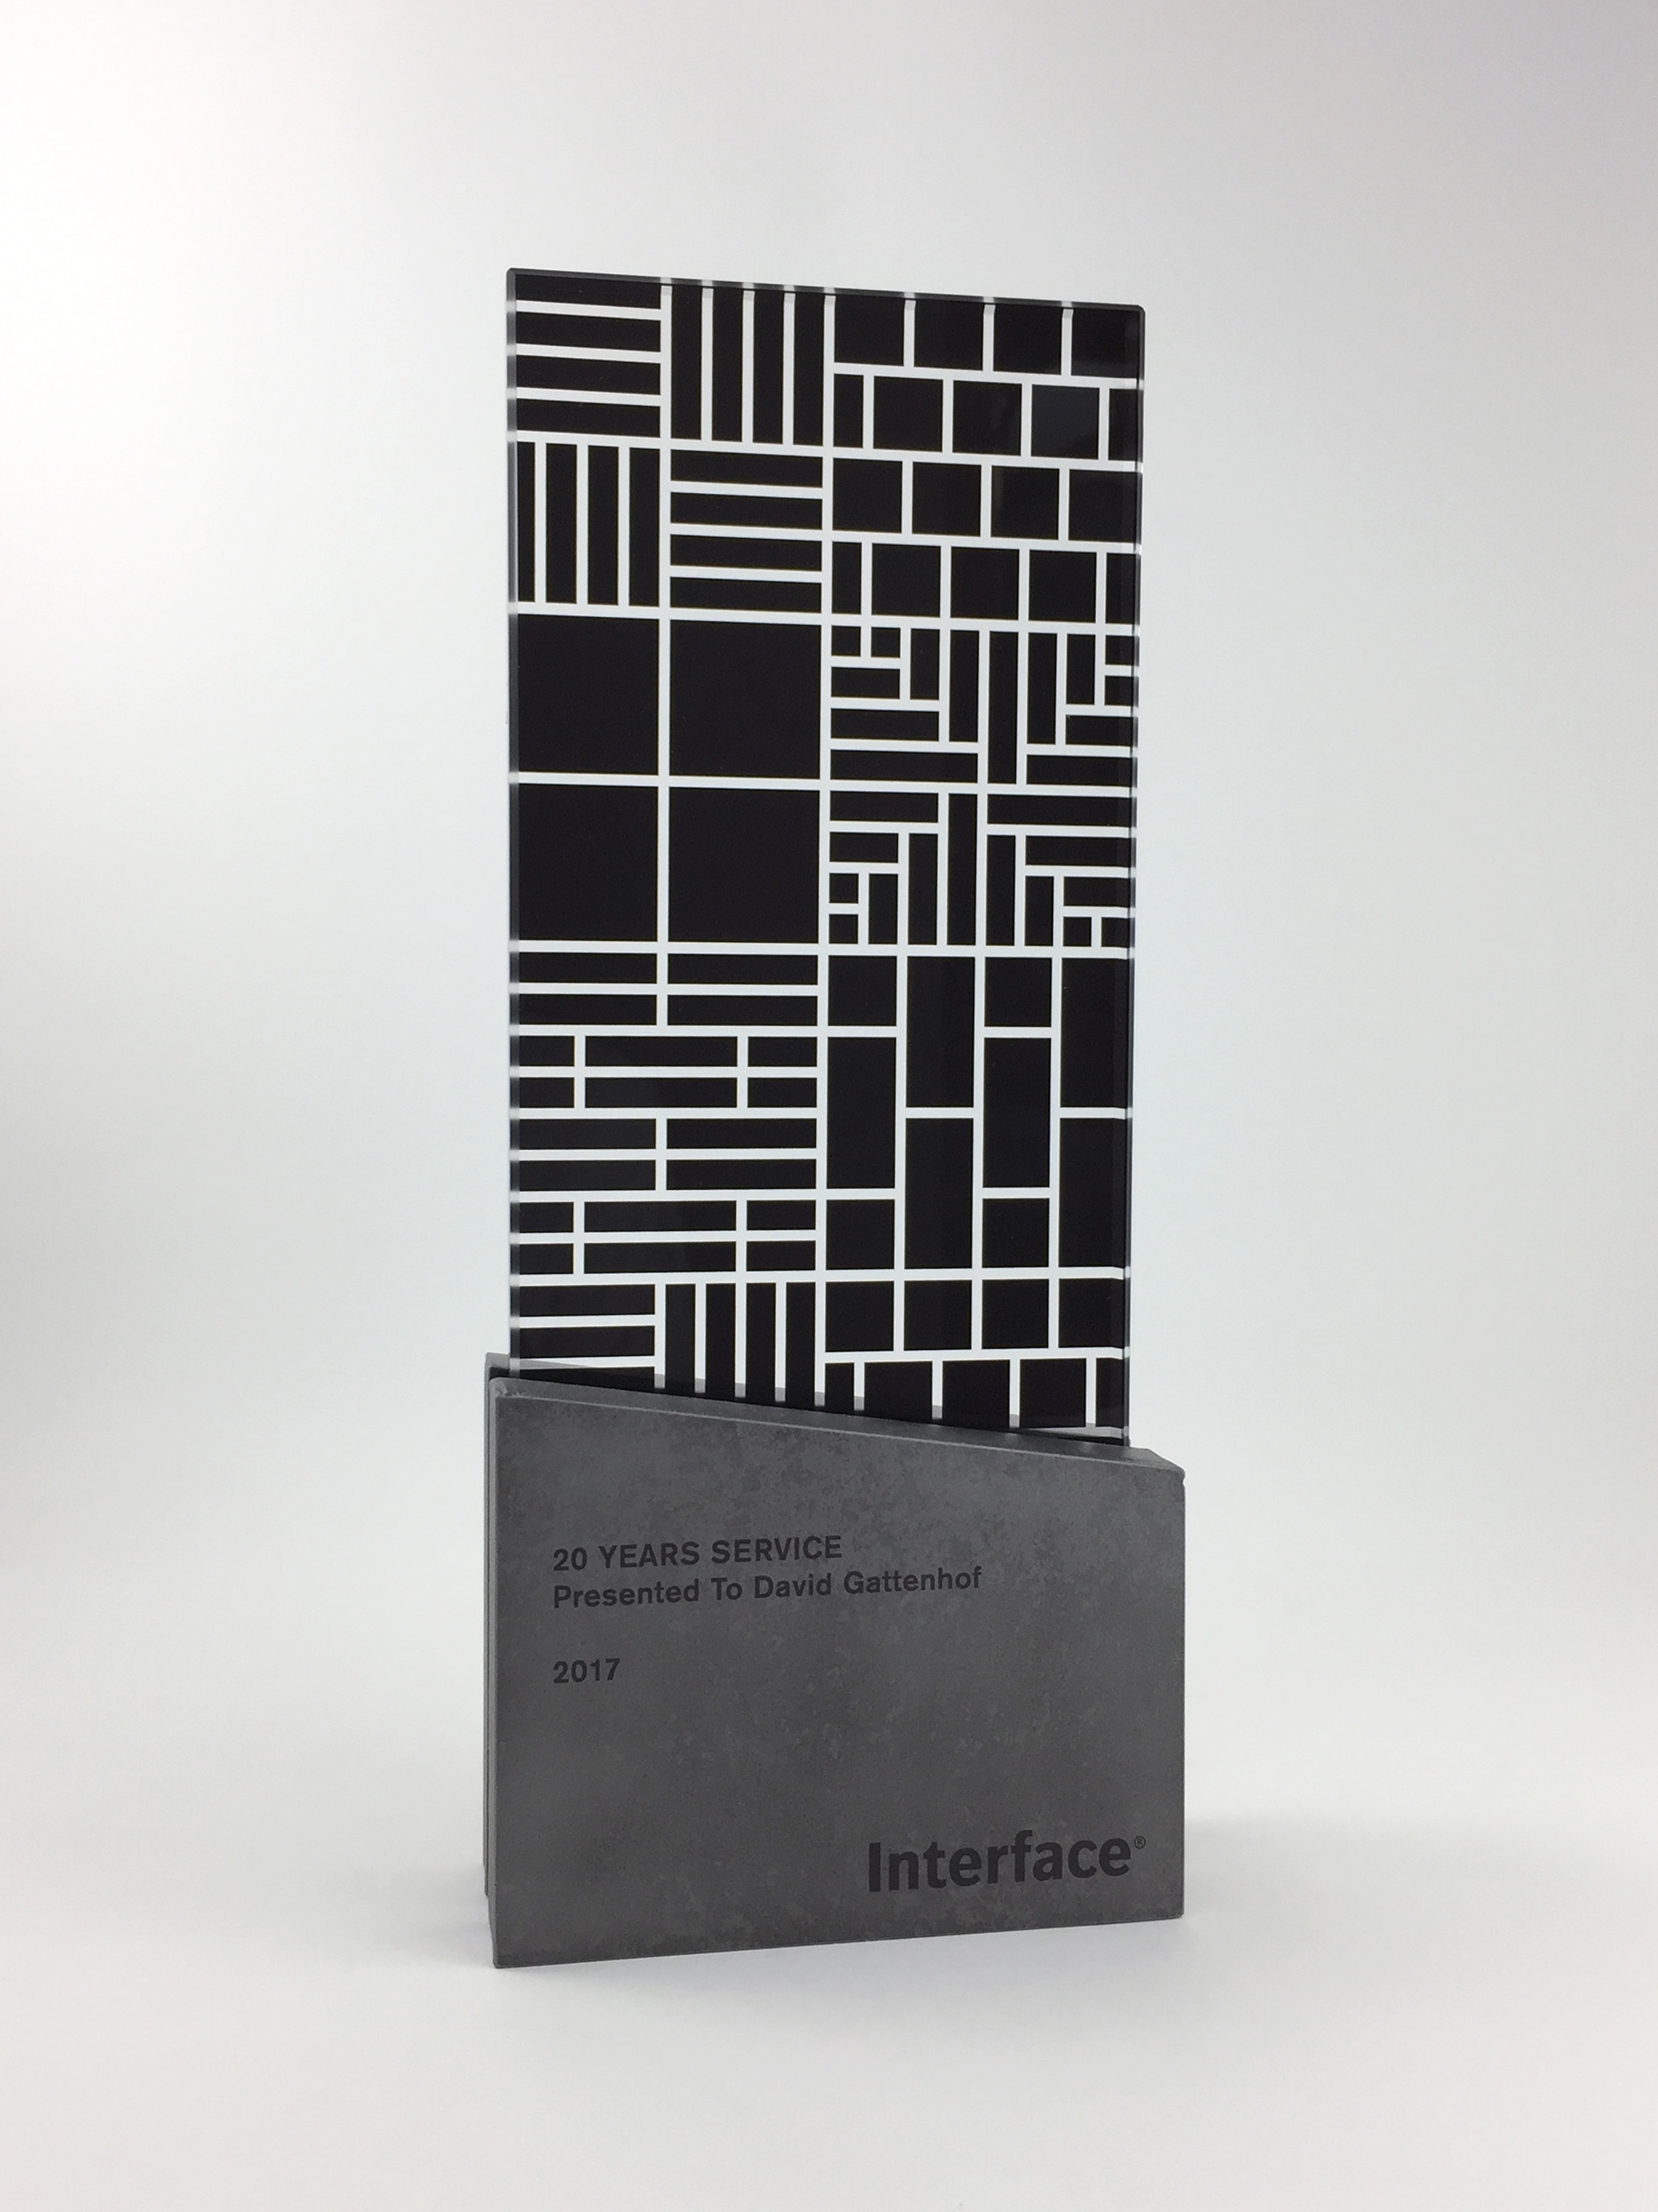 interface-awards-metal-glass-graphic-art-trophy-06.jpg